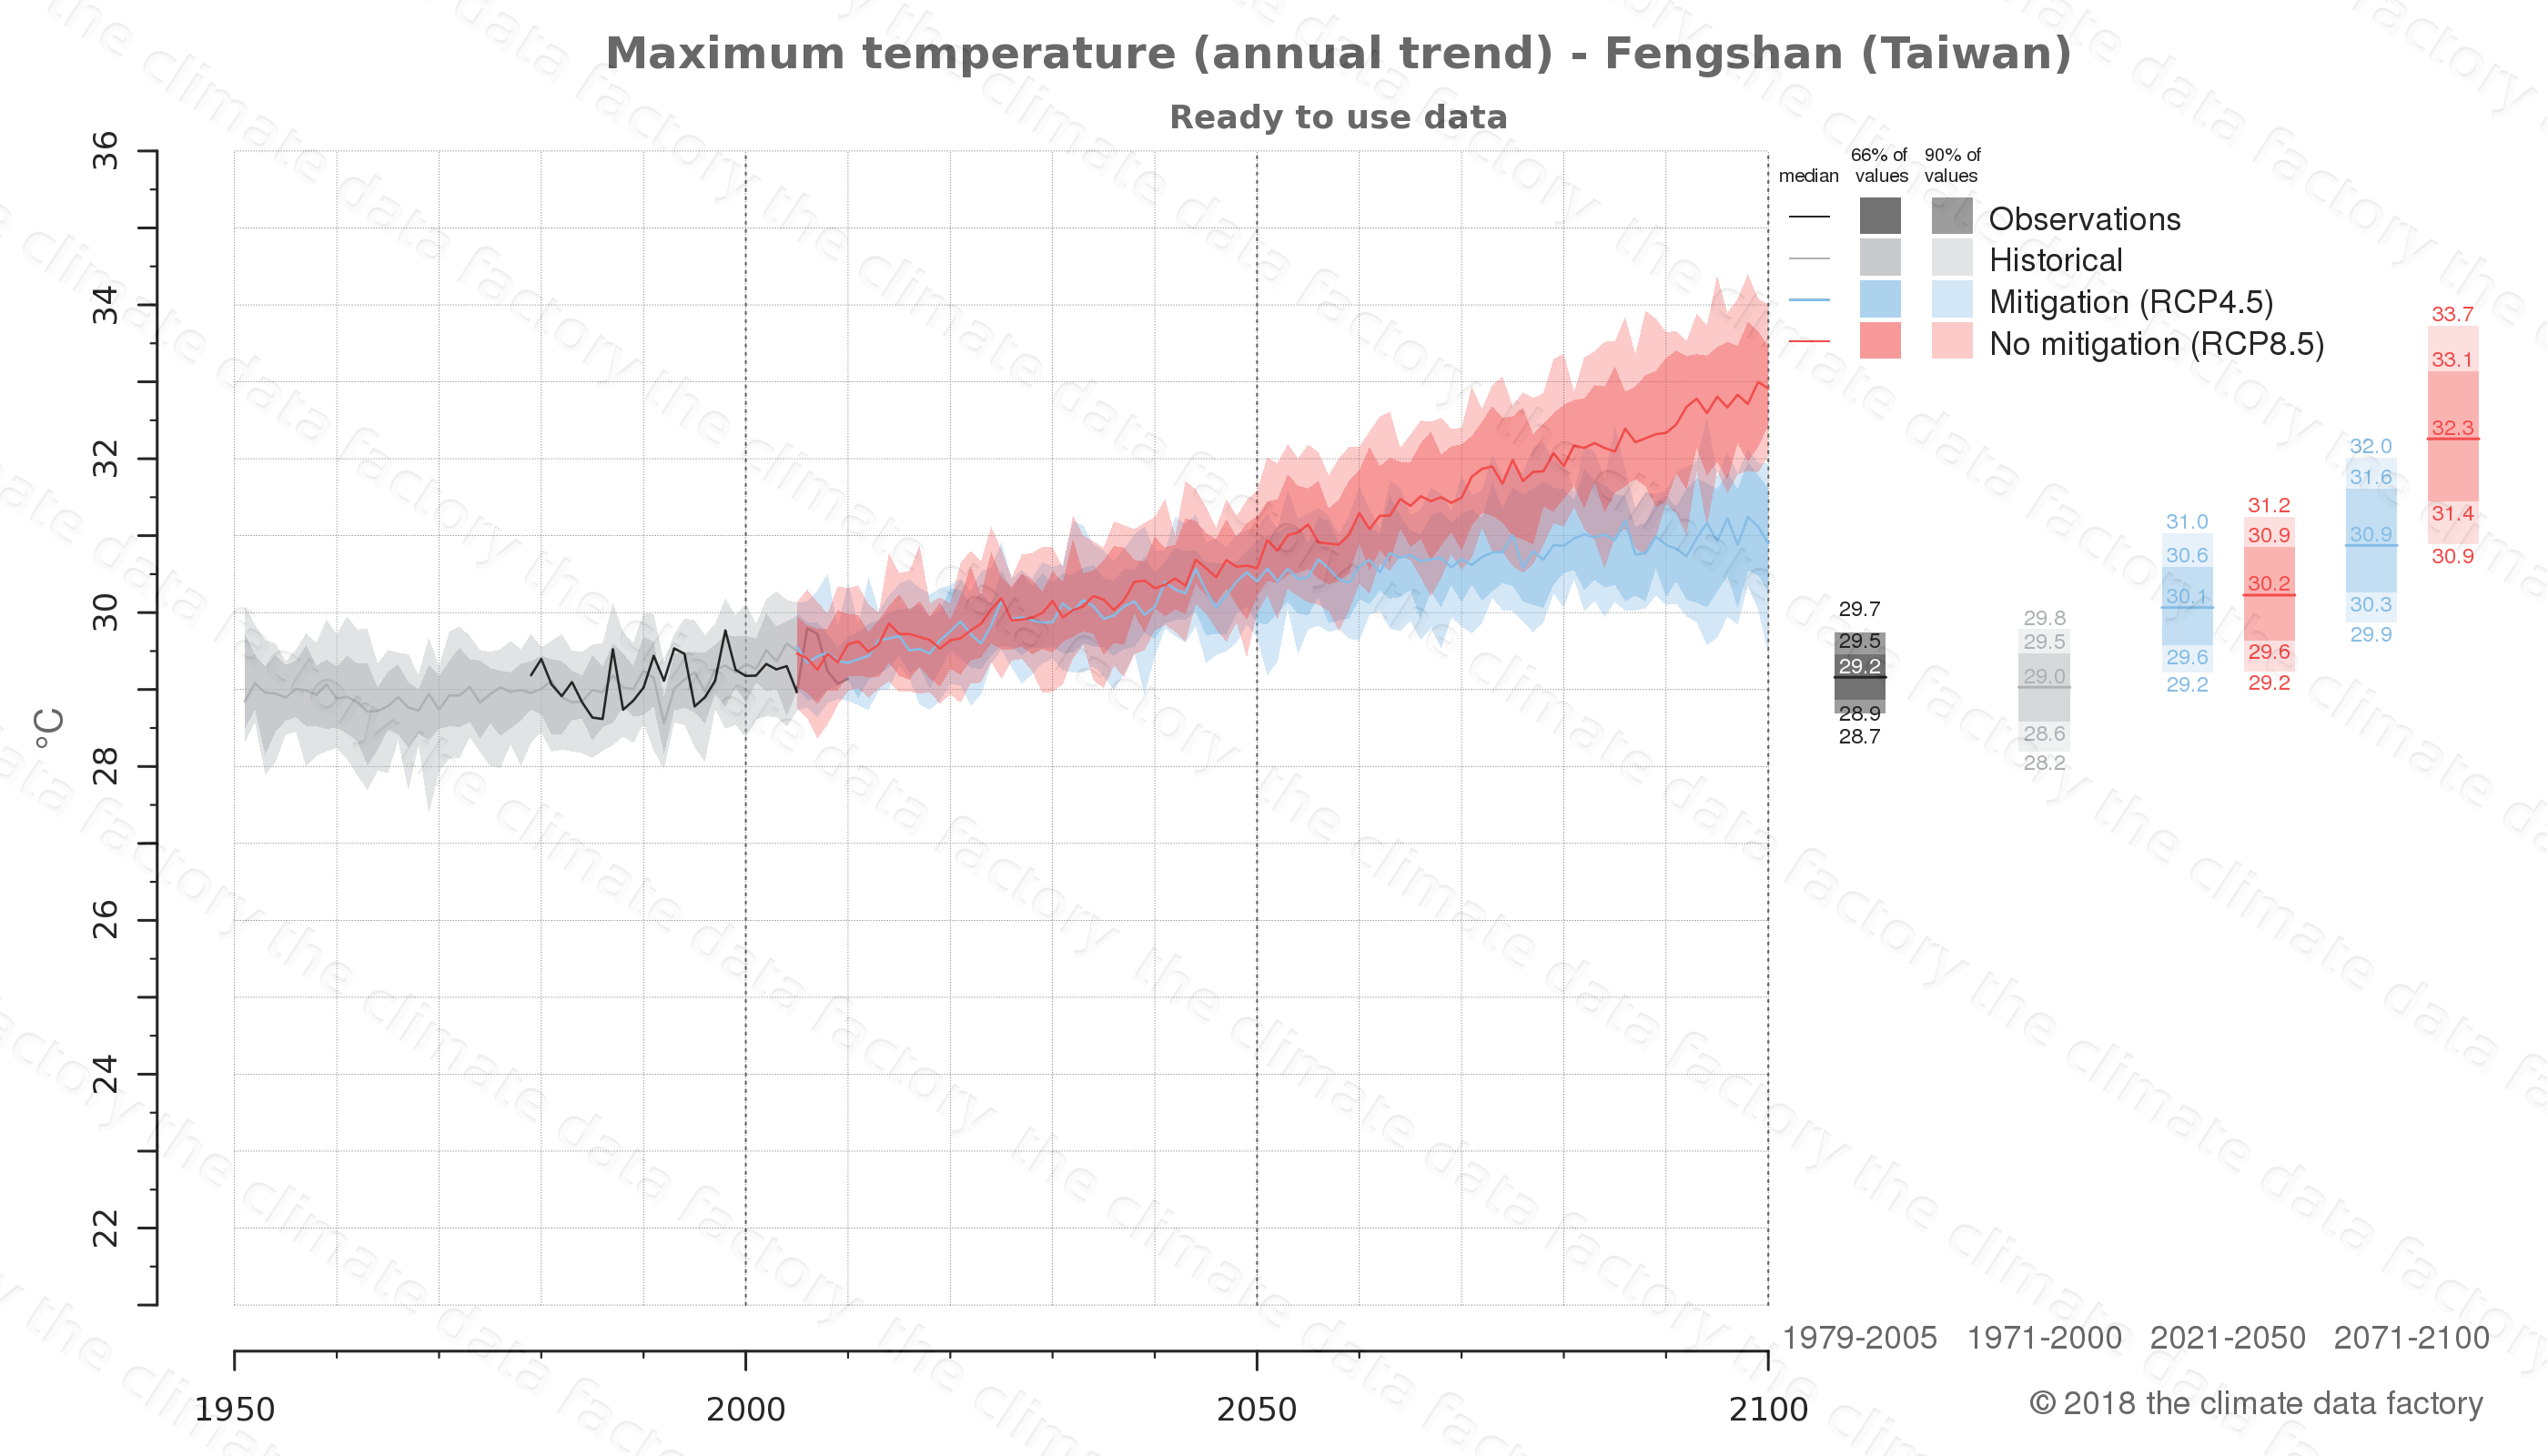 climate change data policy adaptation climate graph city data maximum-temperature fengshan taiwan